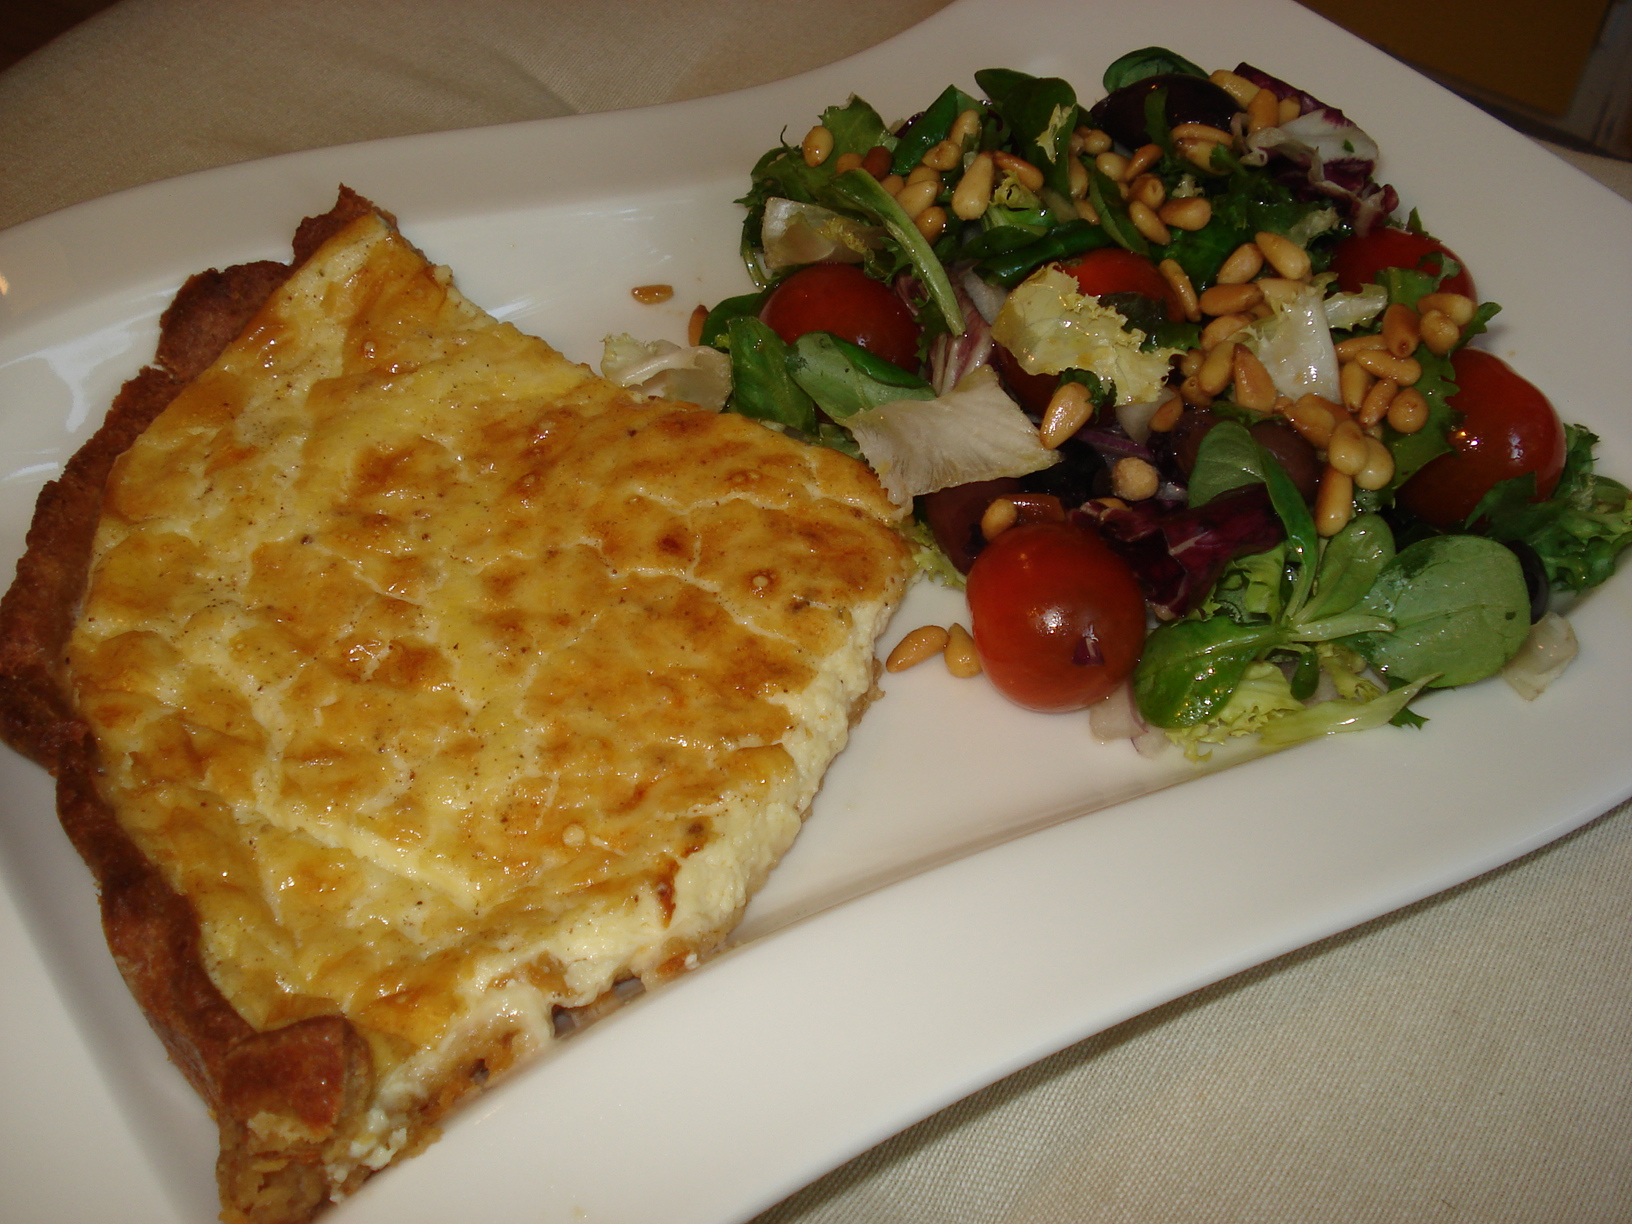 Cheese pie with Mediterranean salad